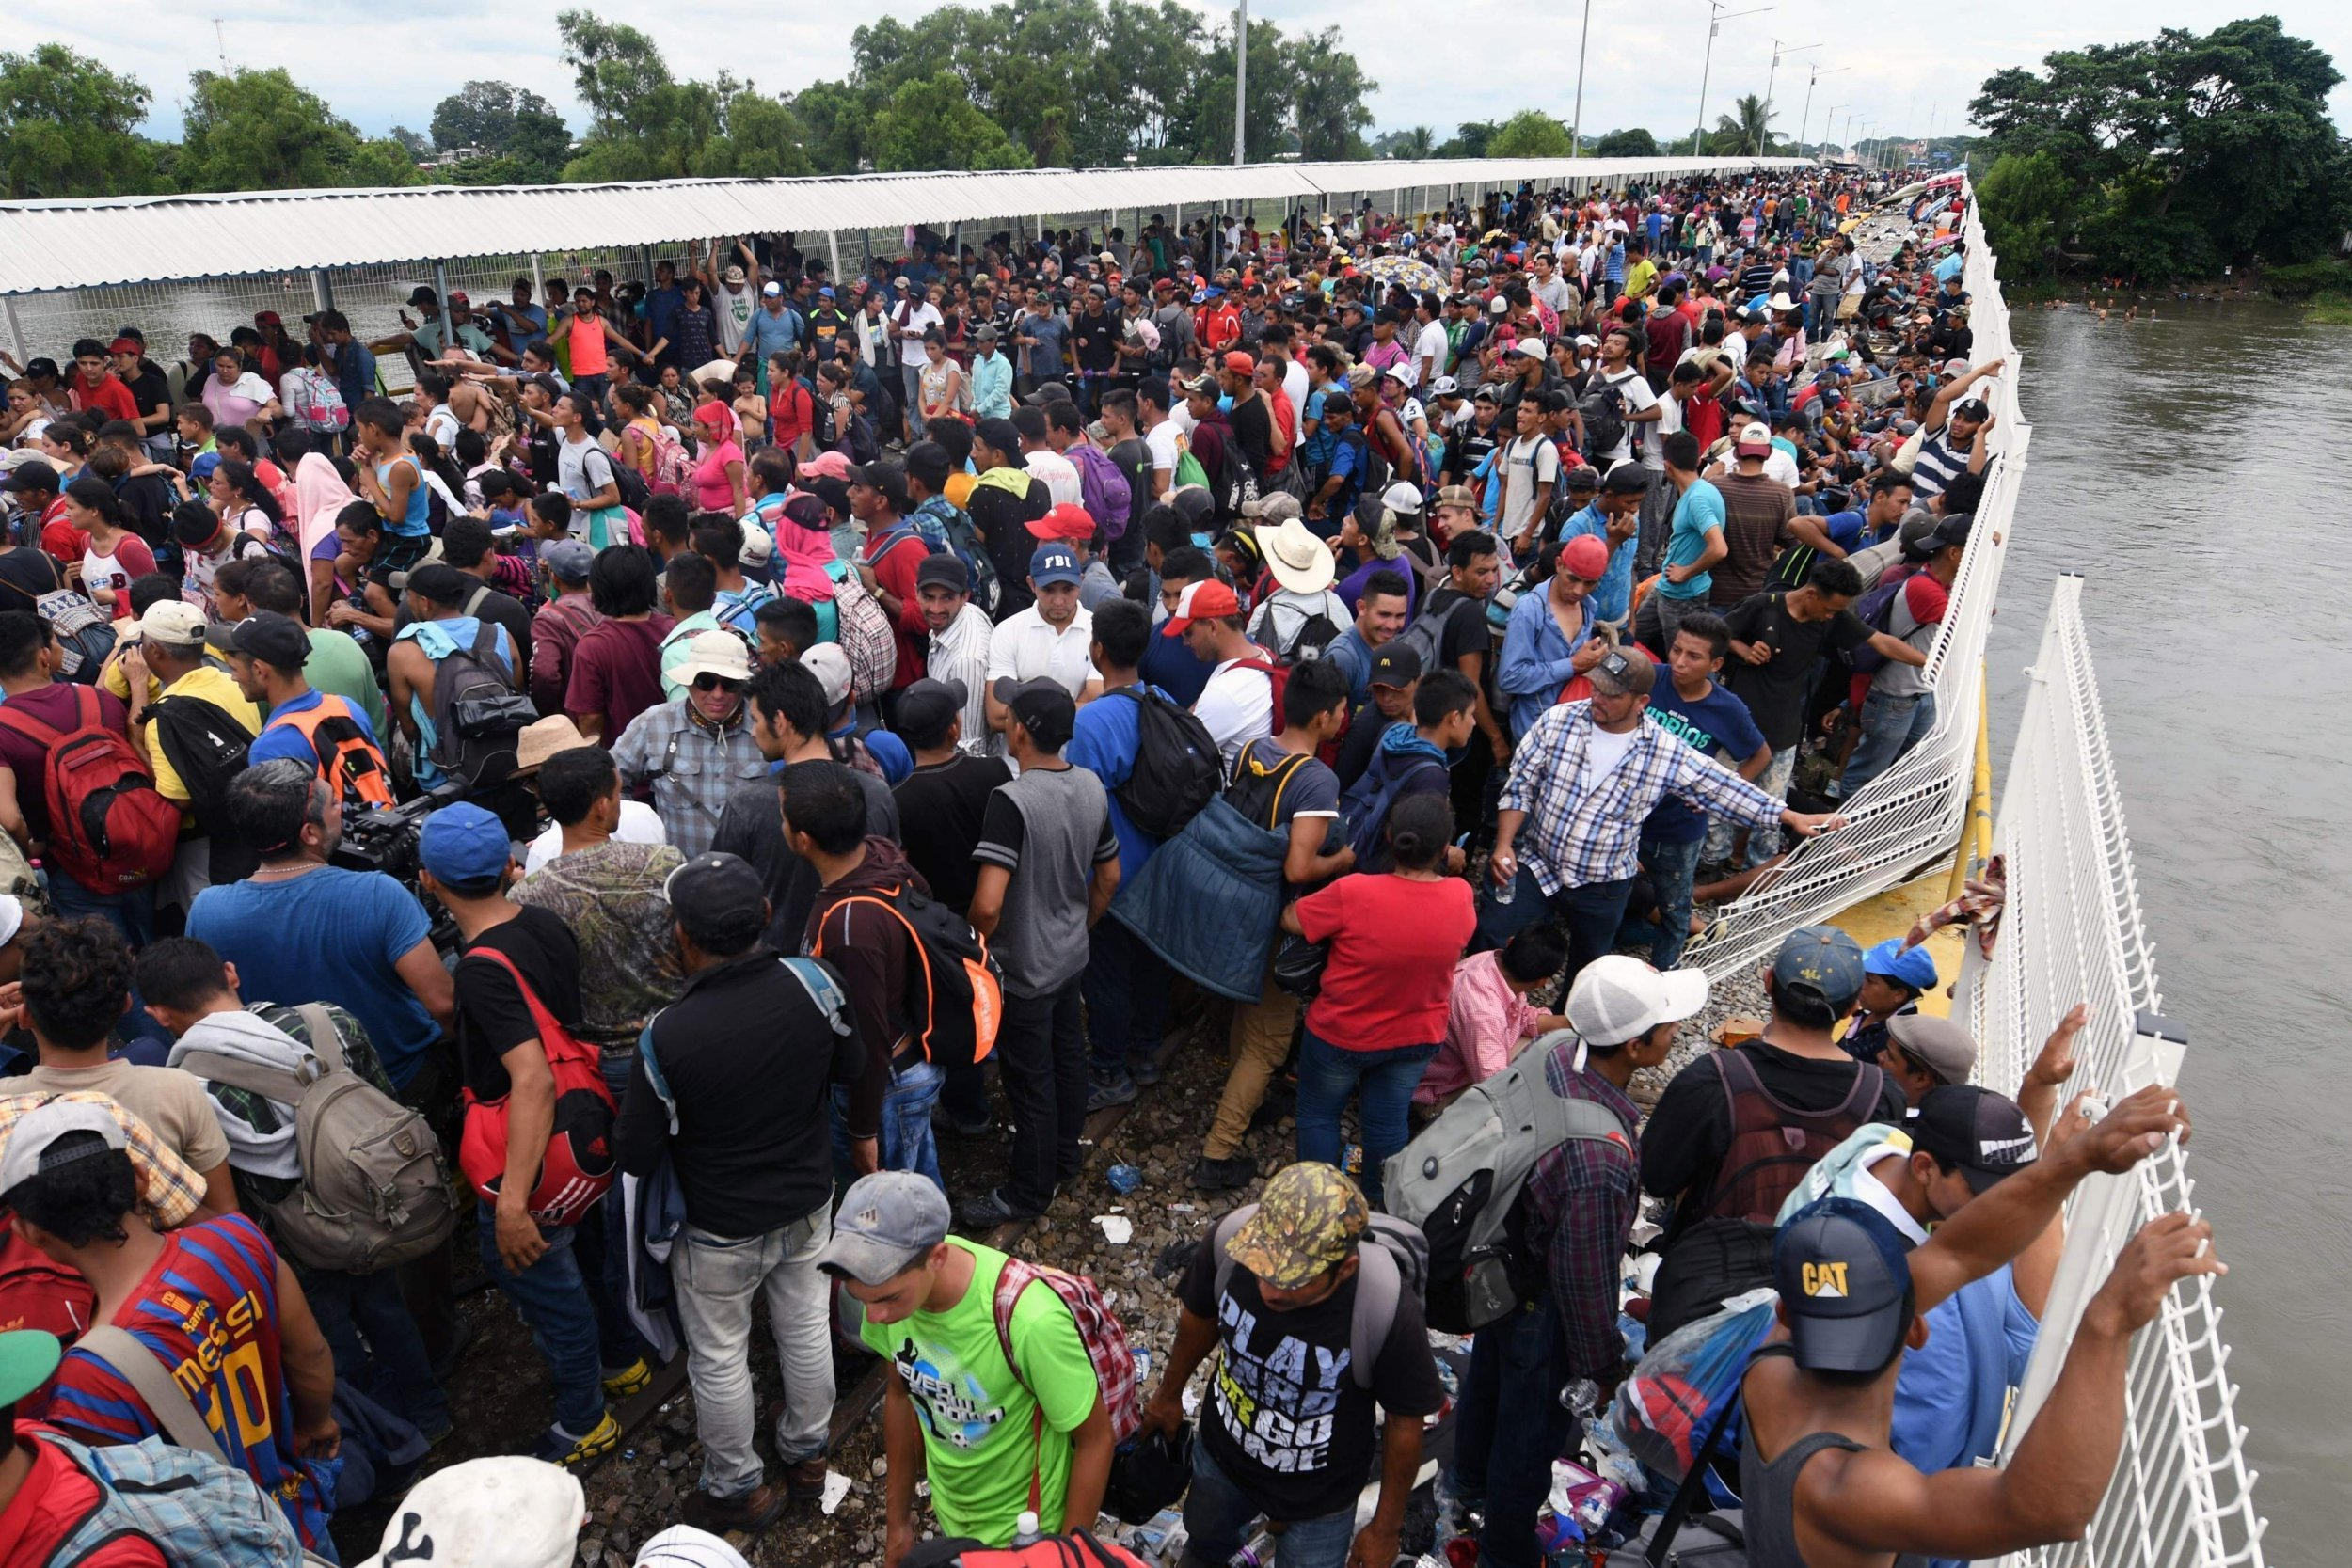 US military warns thousands in migrant caravan not to apply for asylum